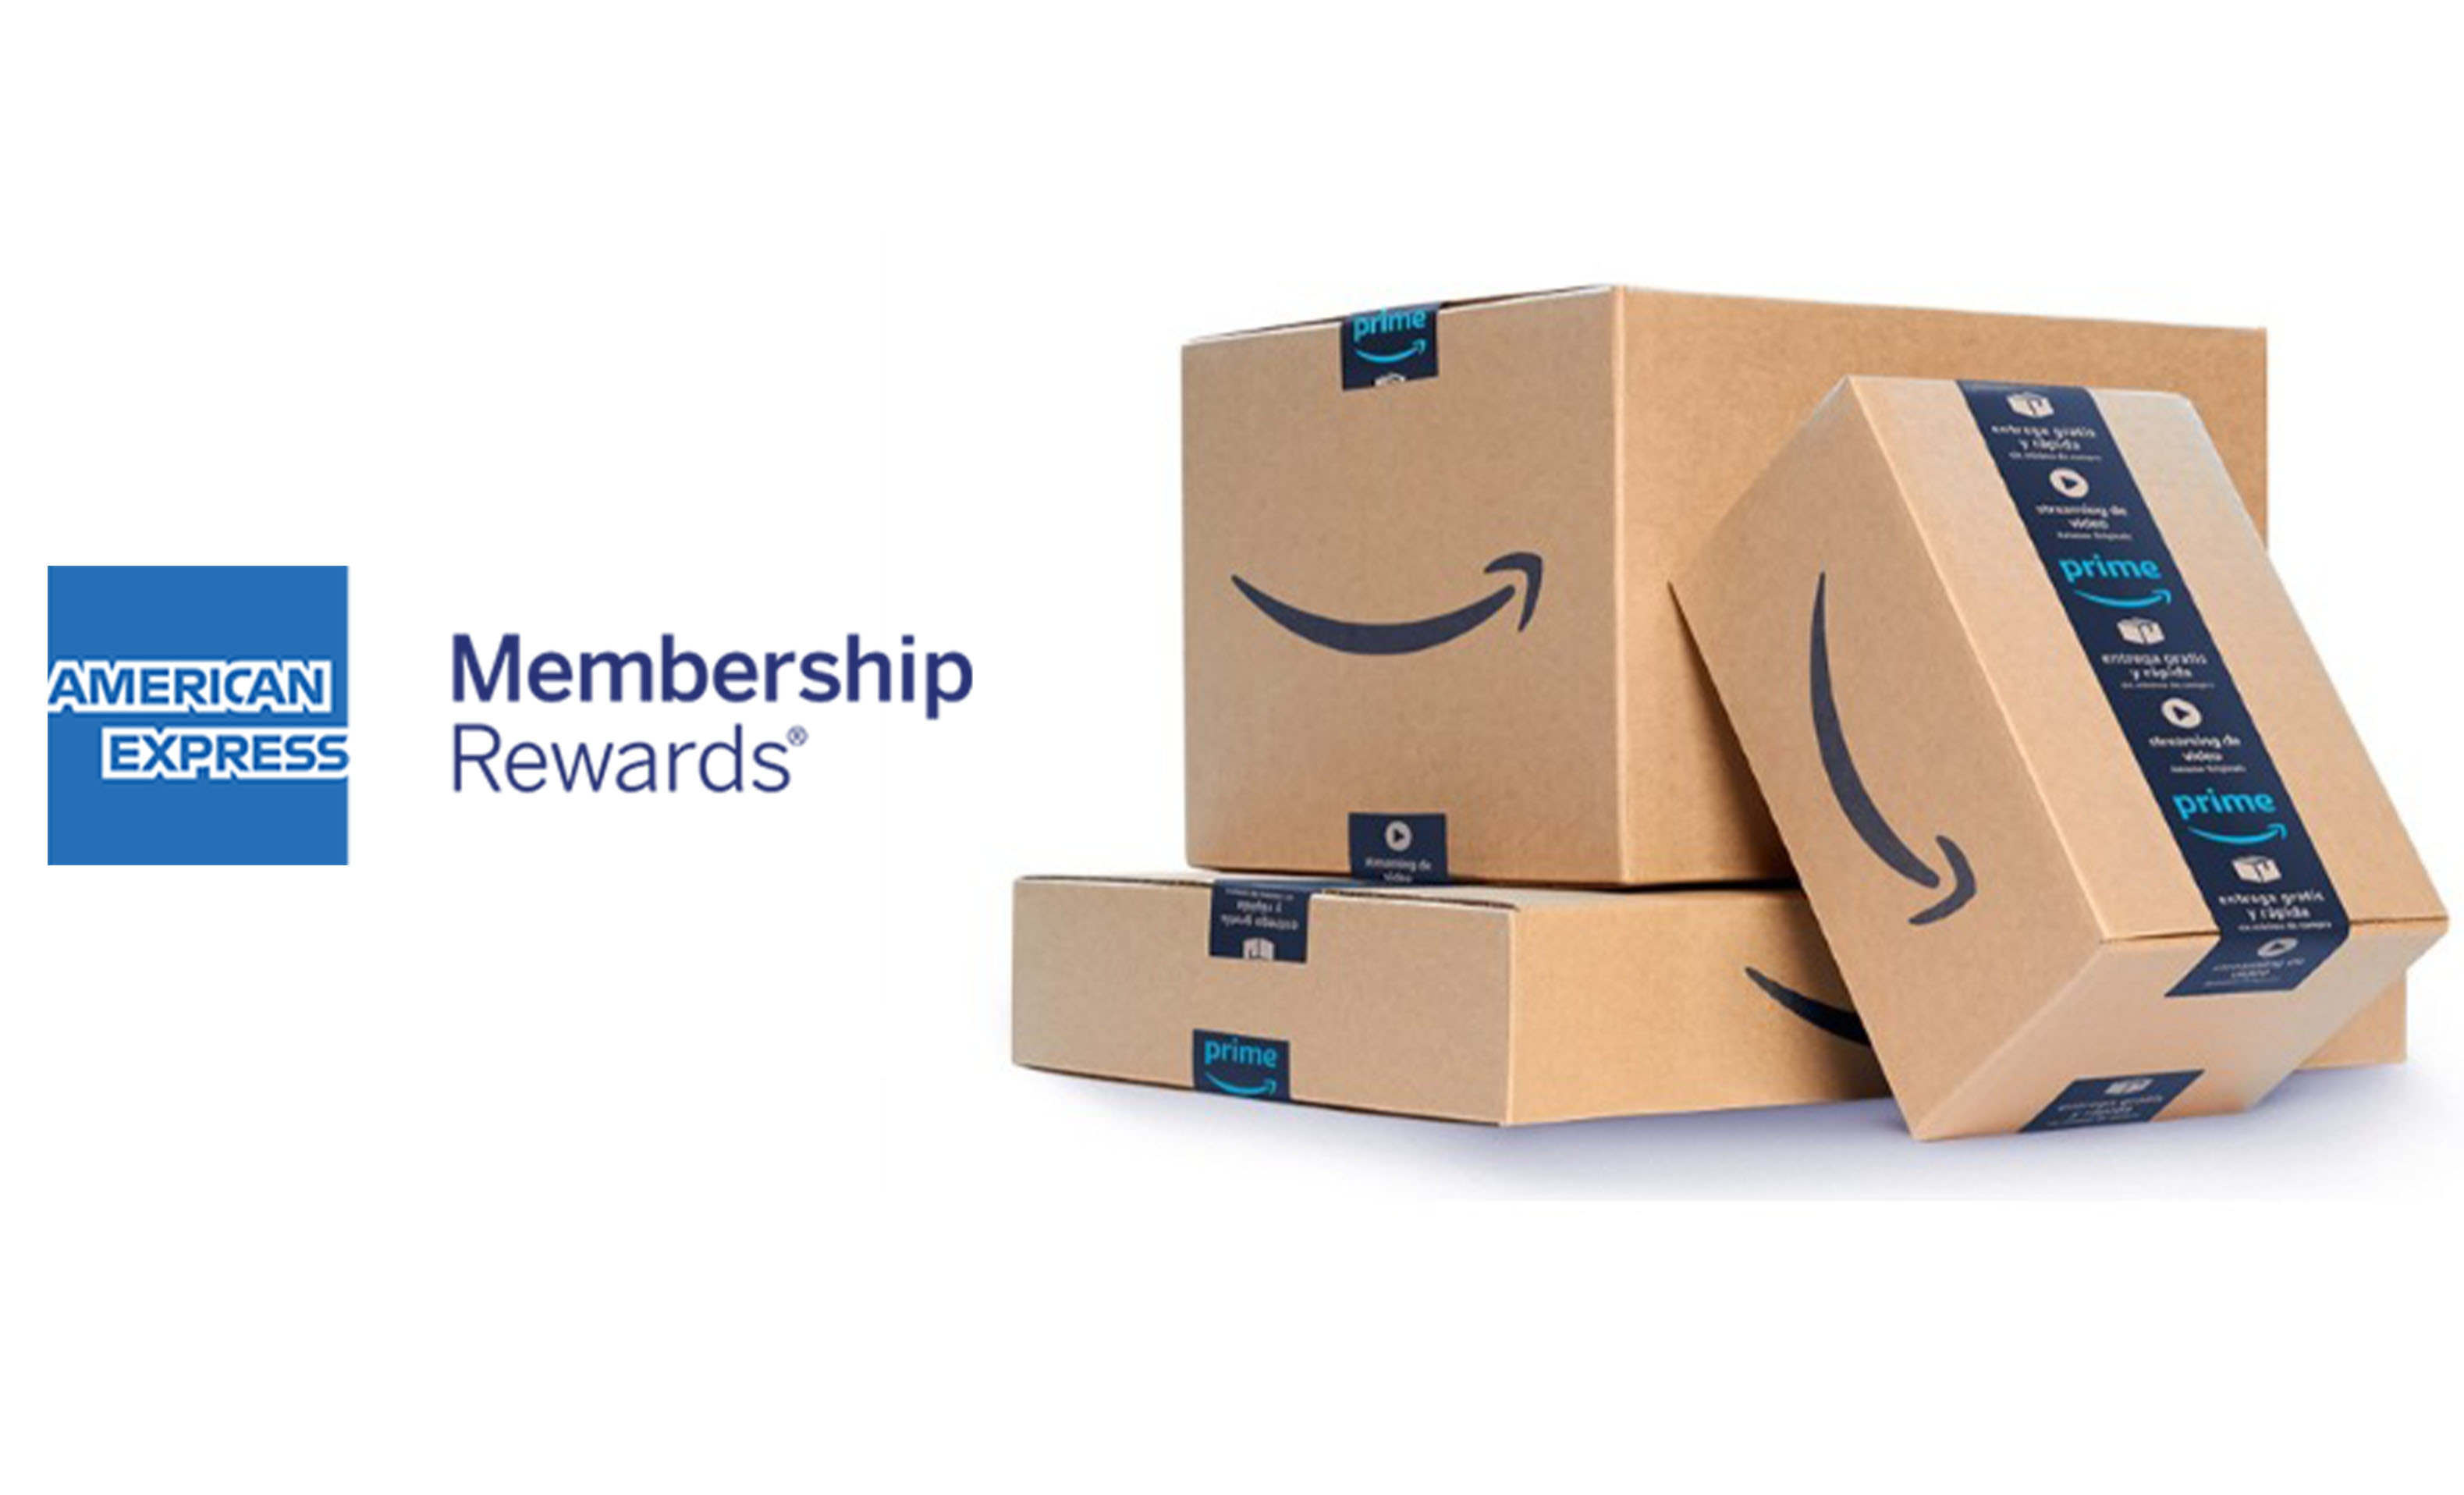 Up to 9% off at Amazon with your American Express card CNN